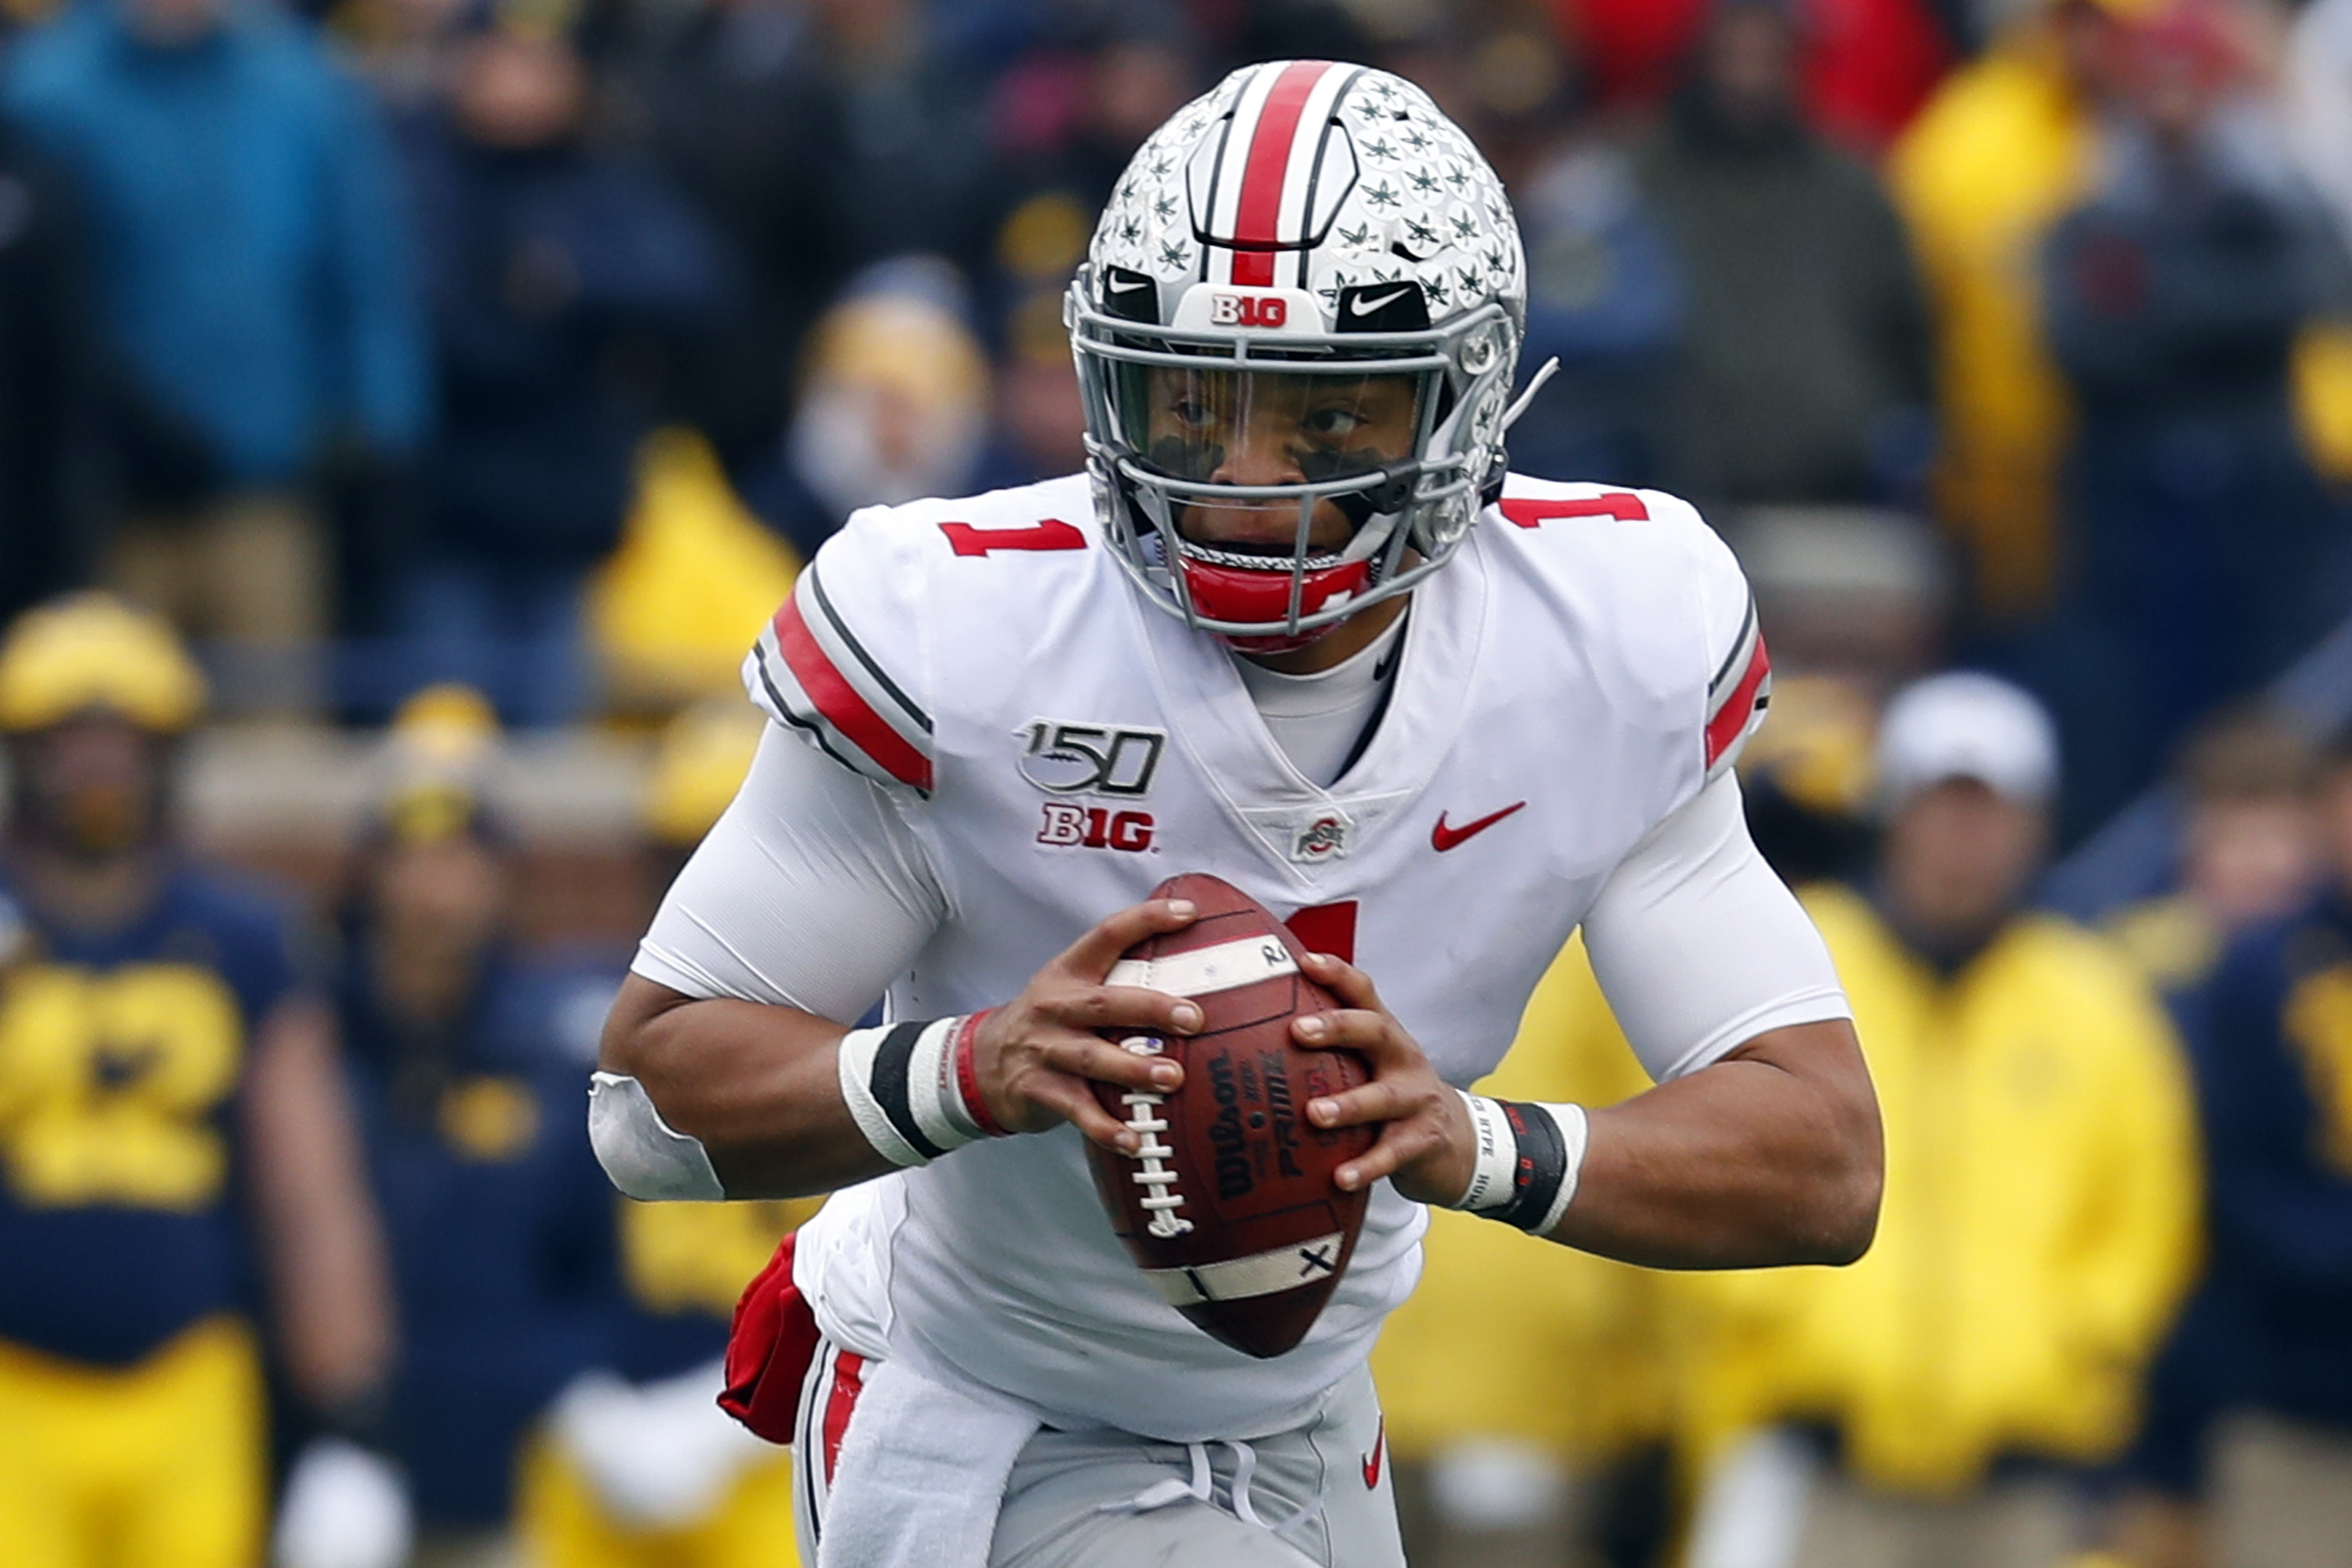 Ohio State s Justin Fields Starts Online Petition As Big Ten Parents Question Postponing Football The Washington Post